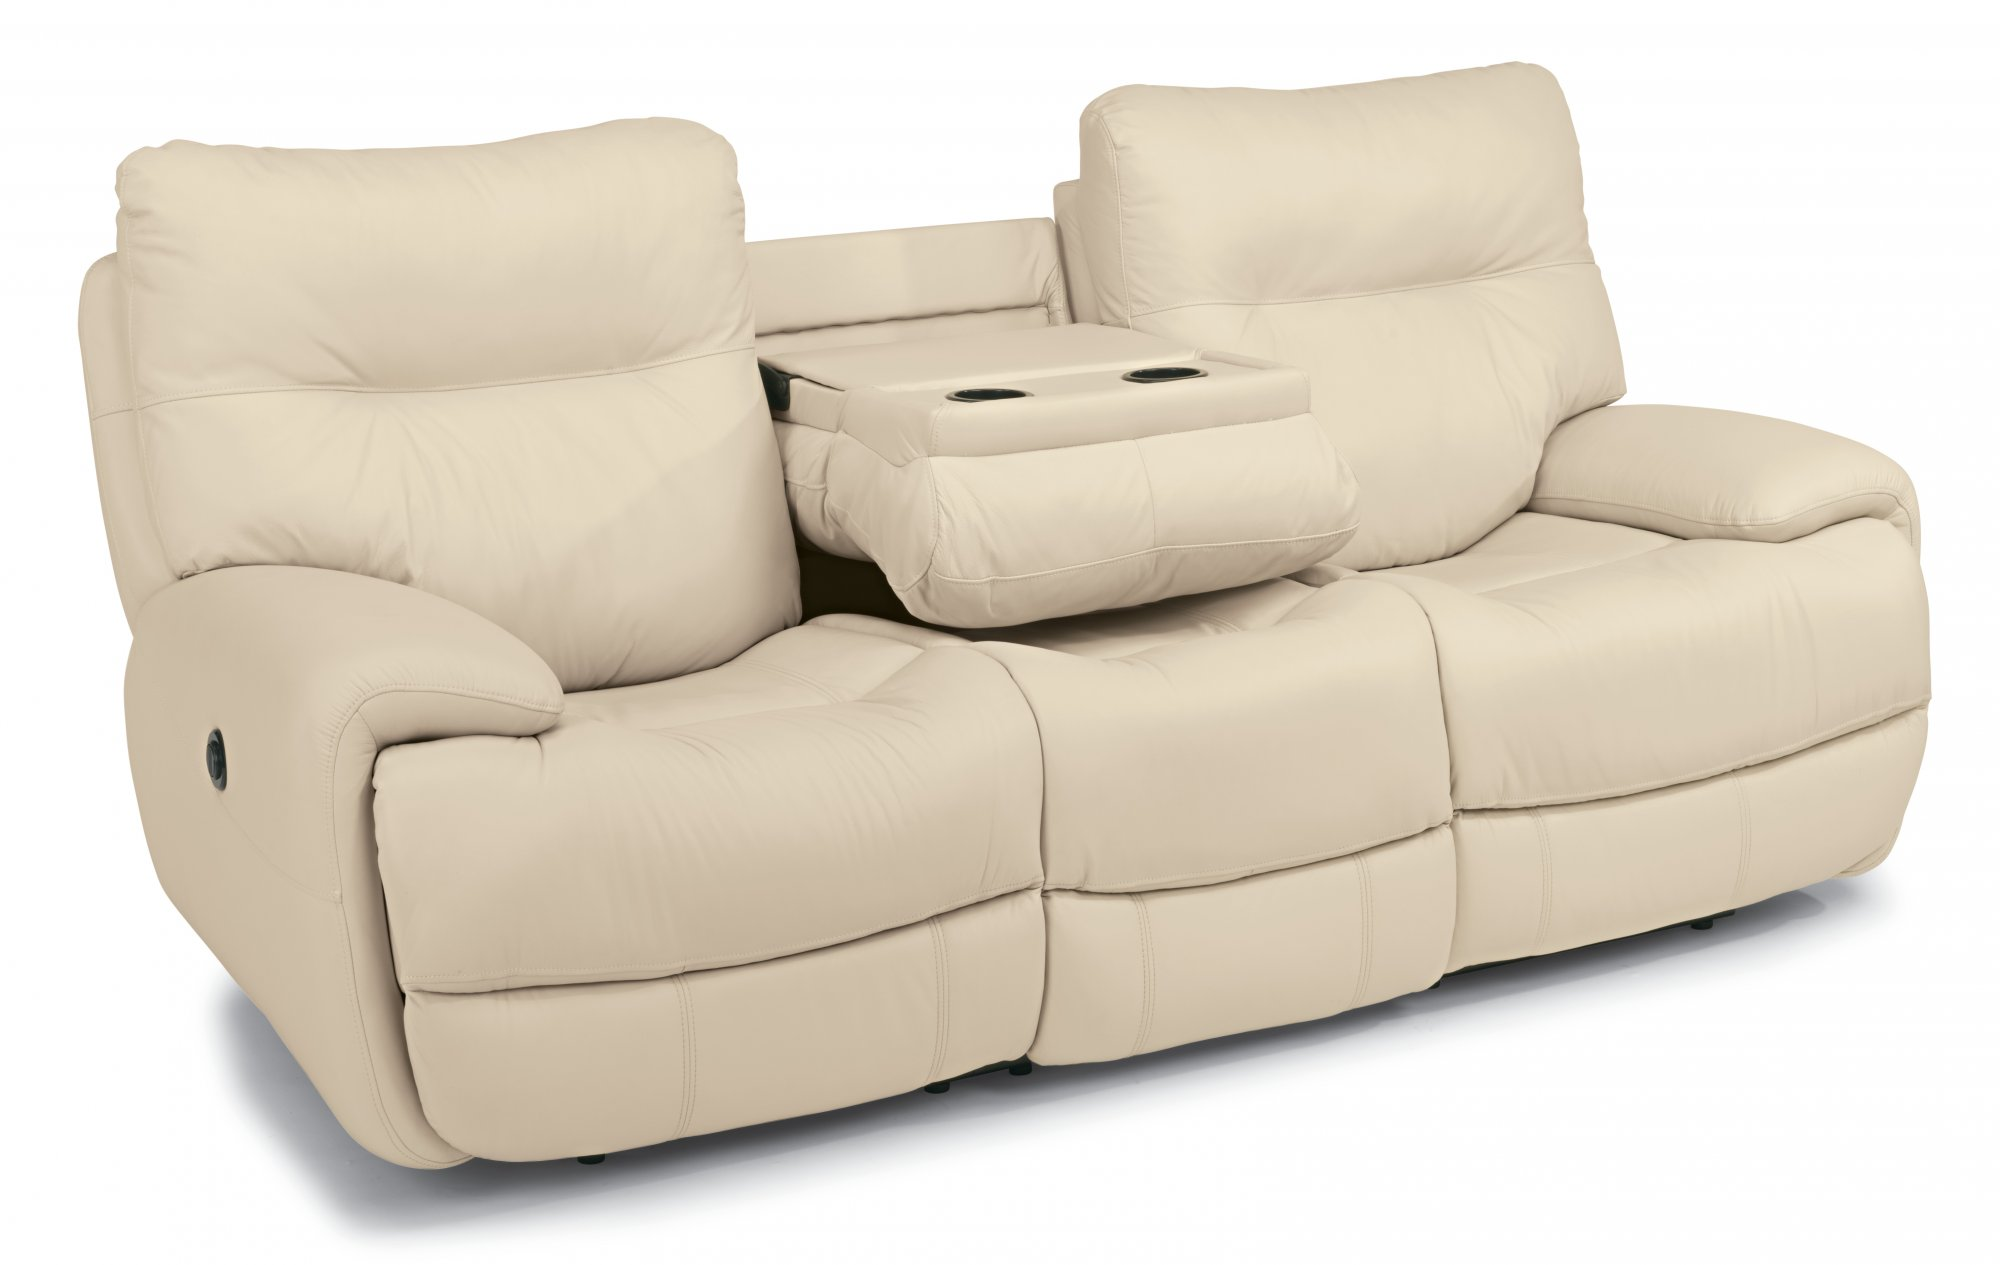 Evian Flexsteelcom - Flexsteel sofa leather